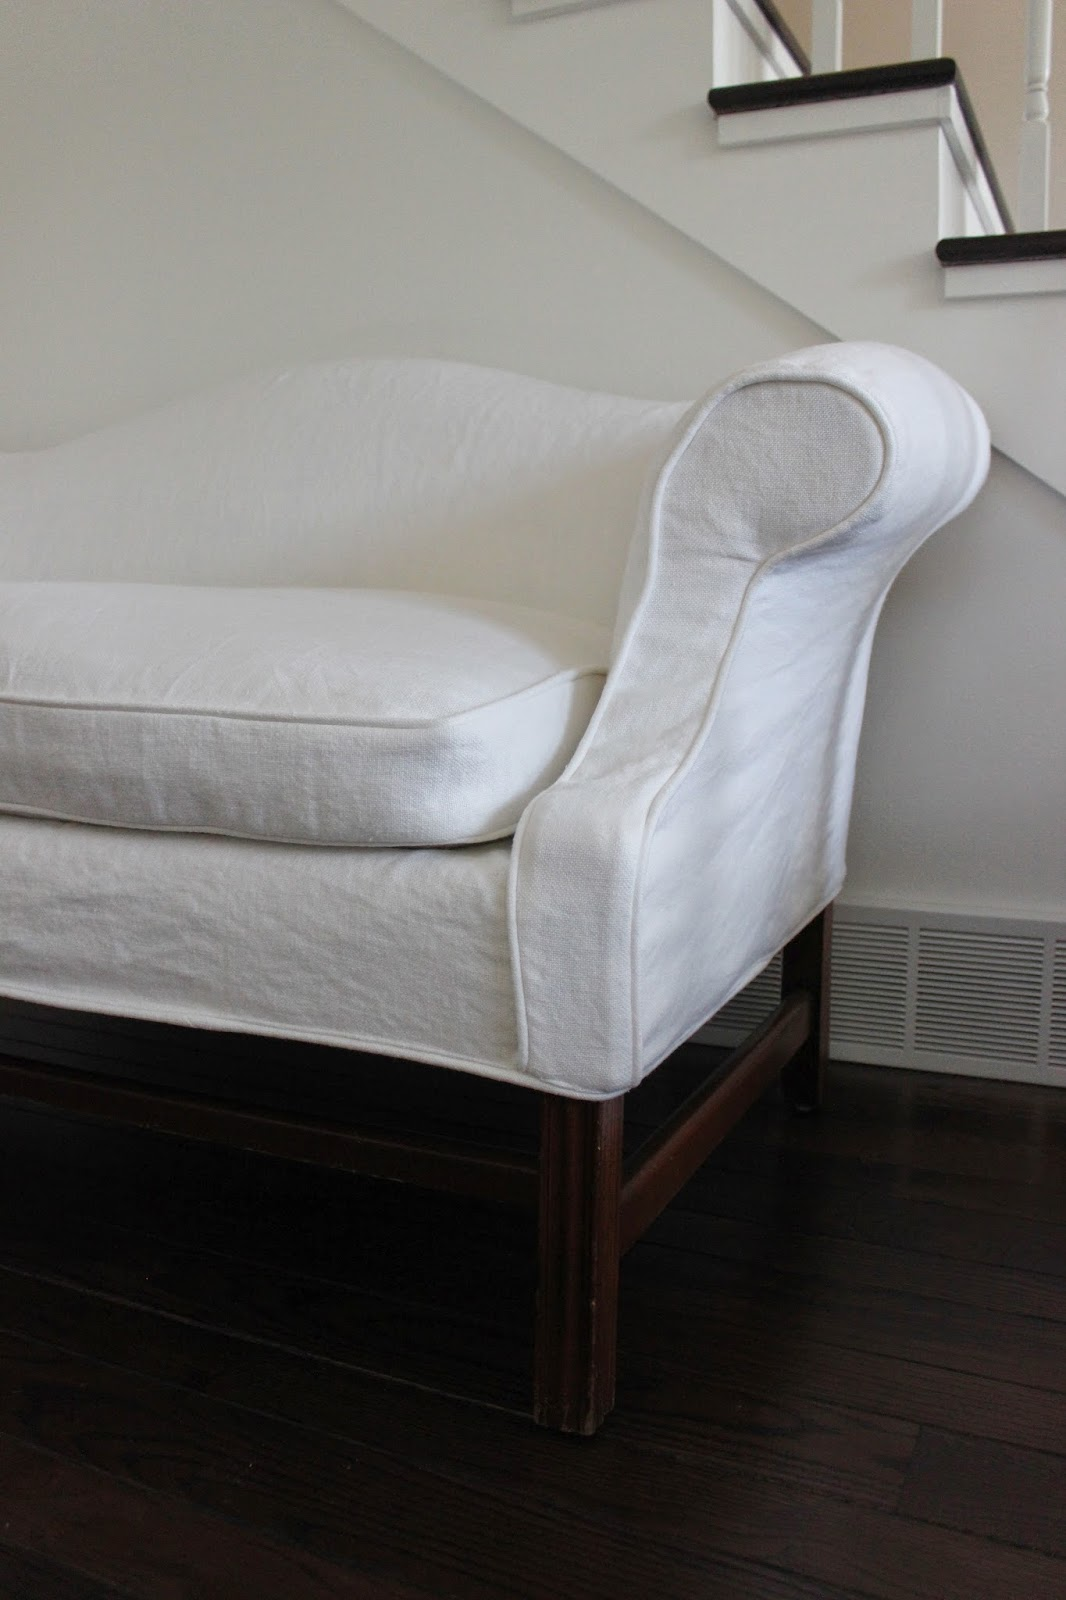 Custom slipcovers by shelley heavyweight white linen slipcovers White loveseat slipcovers